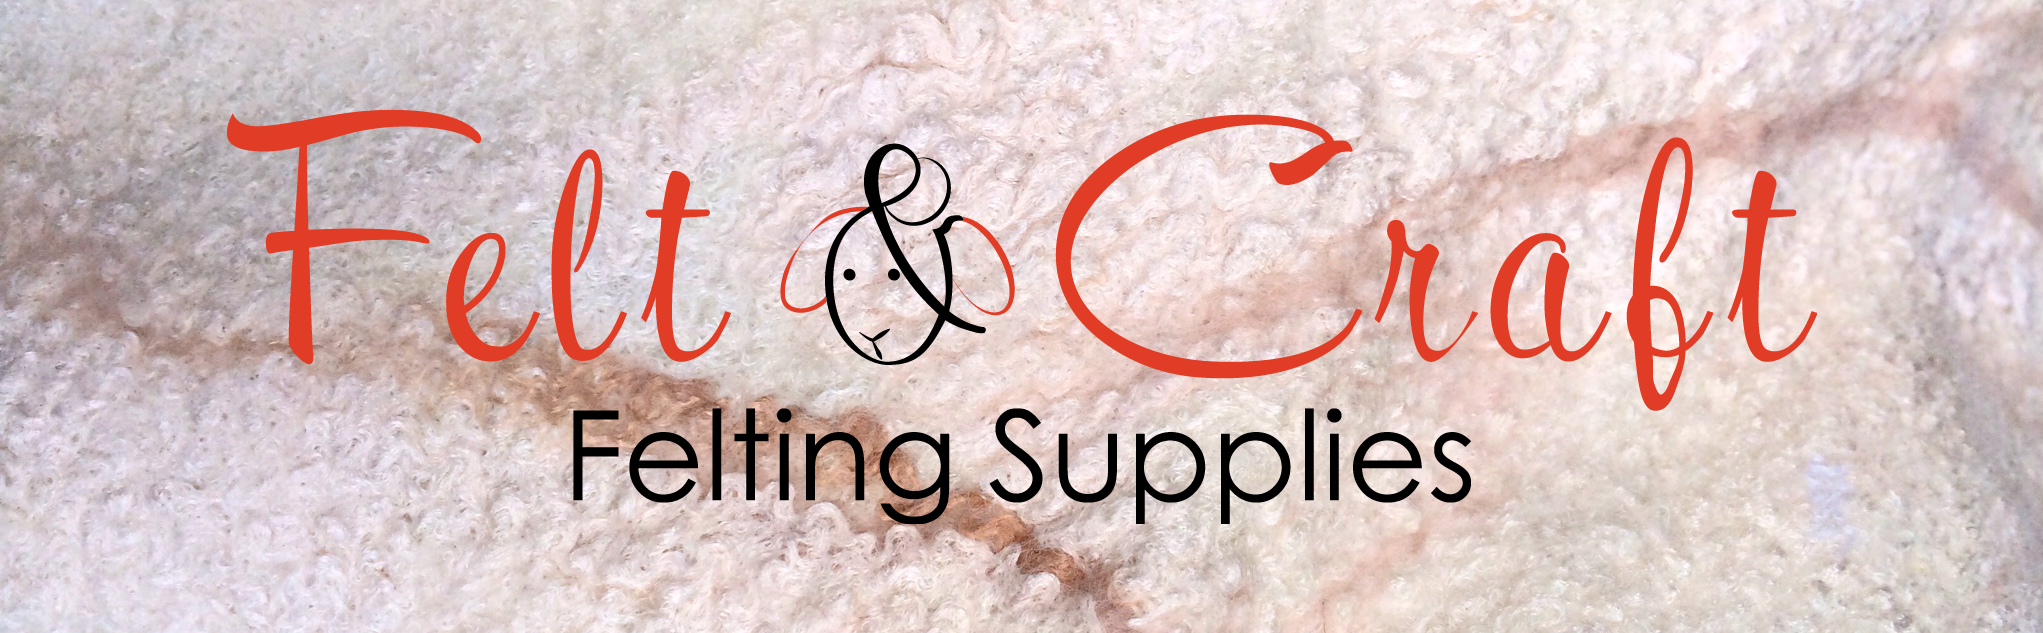 FELT & CRAFT felting supplies